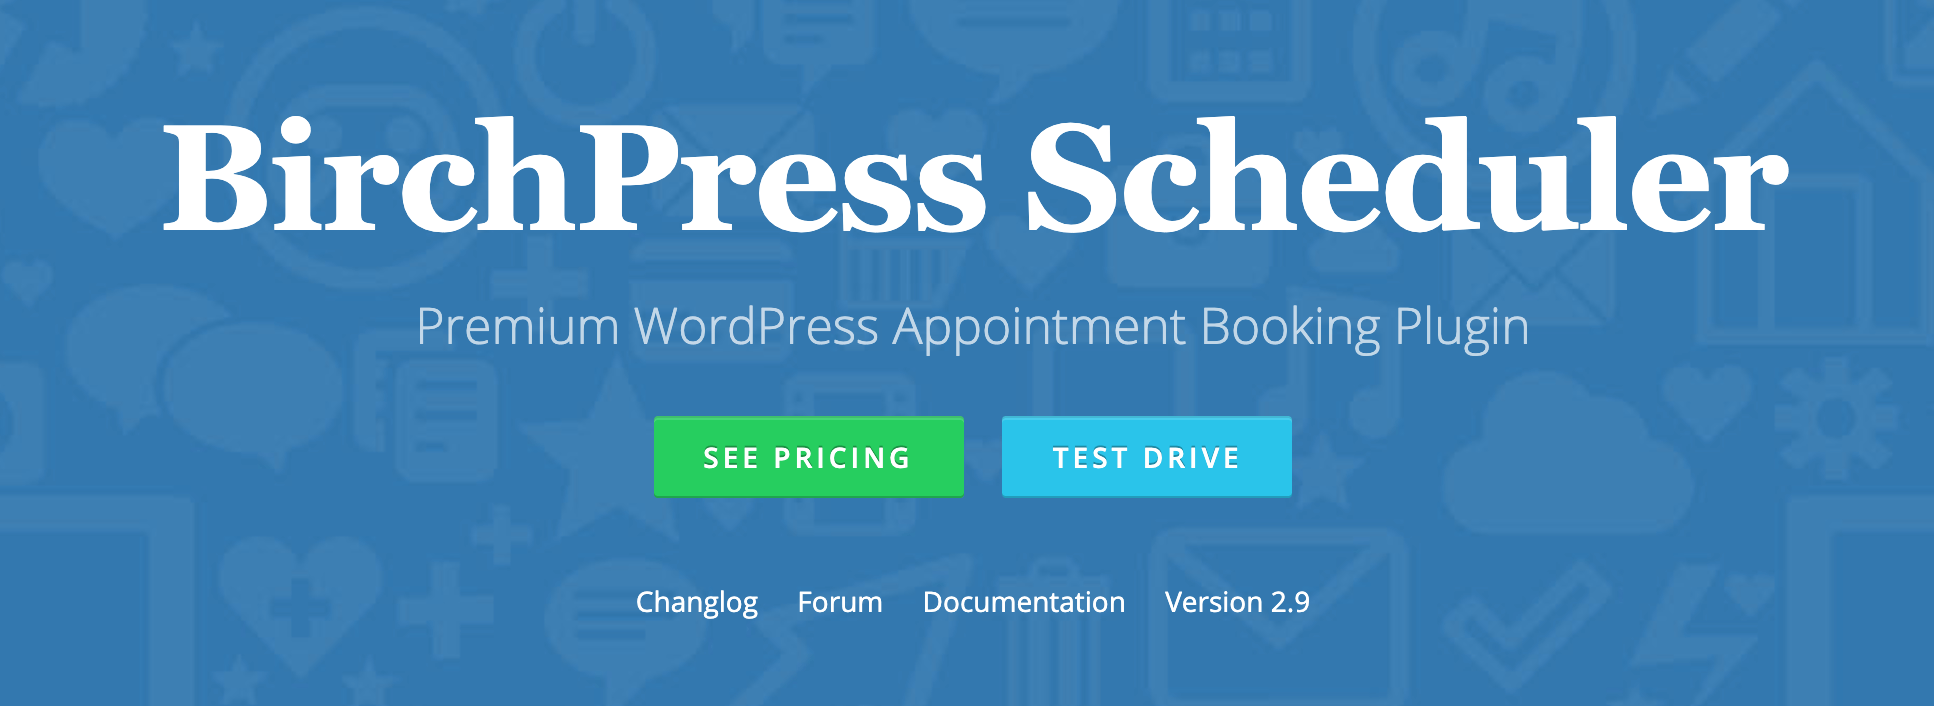 The BirchPress Scheduler plugin.